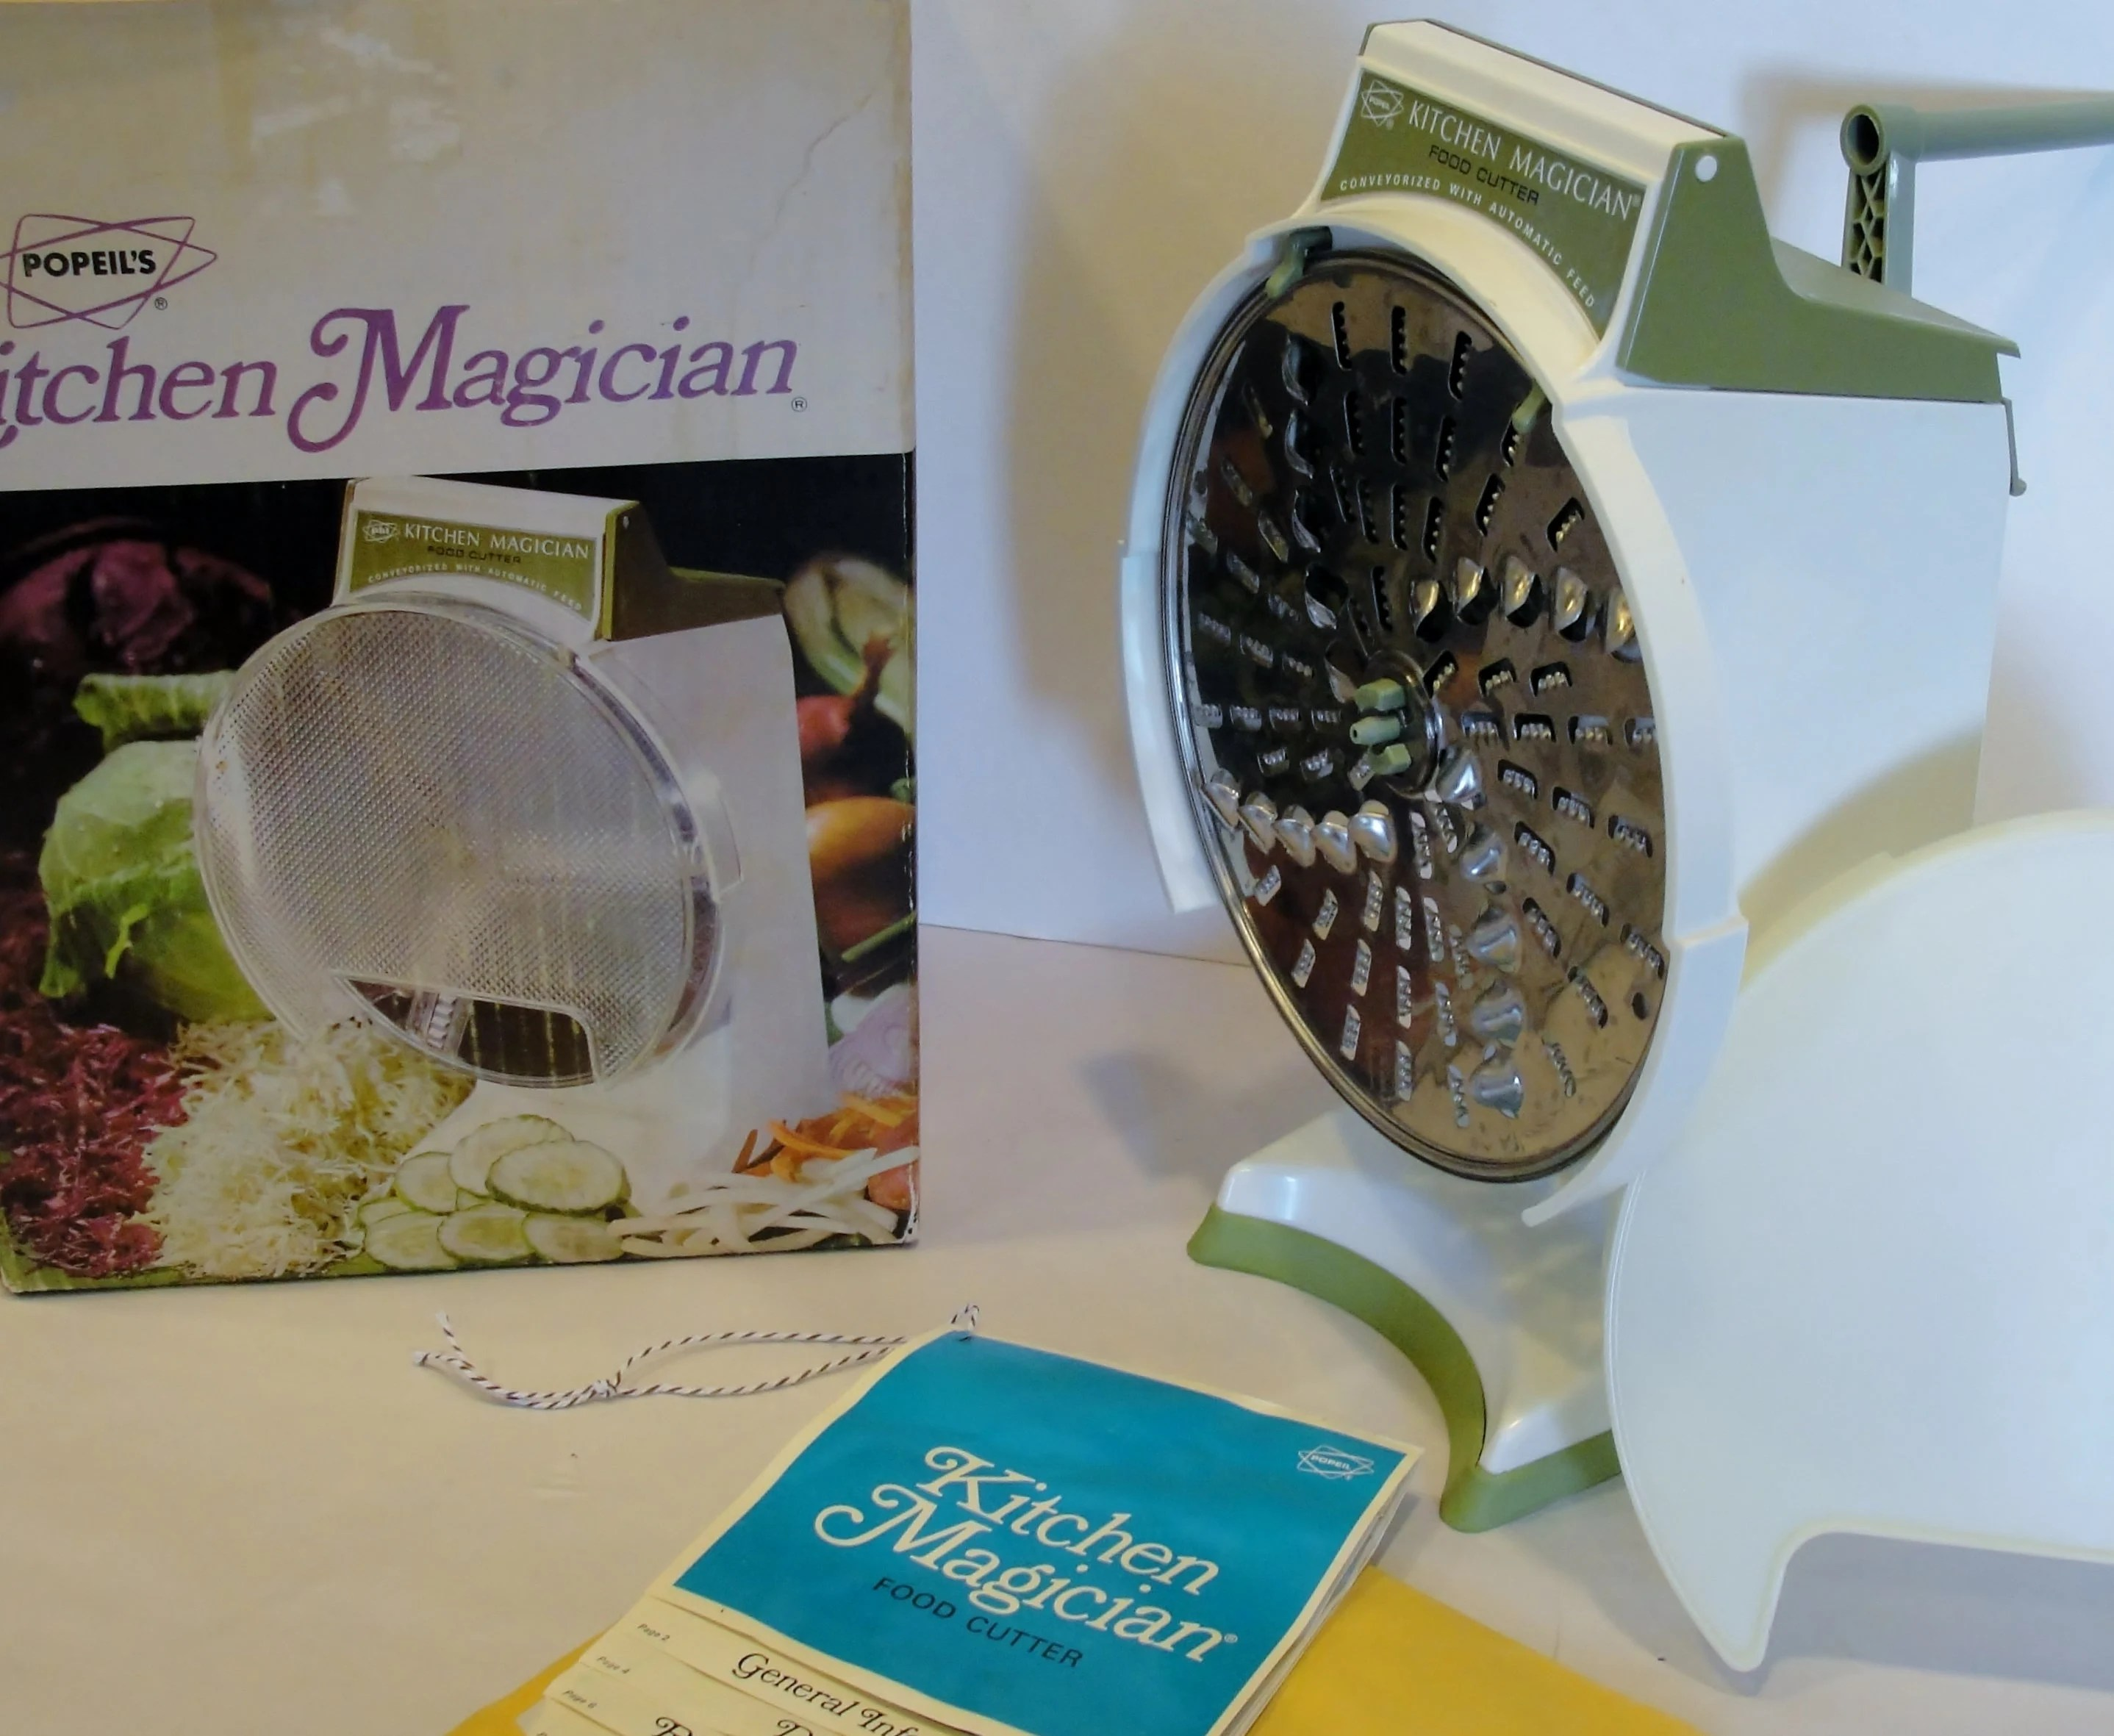 kitchen magician appliance colors 1970s food slicer and shredder by popeil etsy image 0